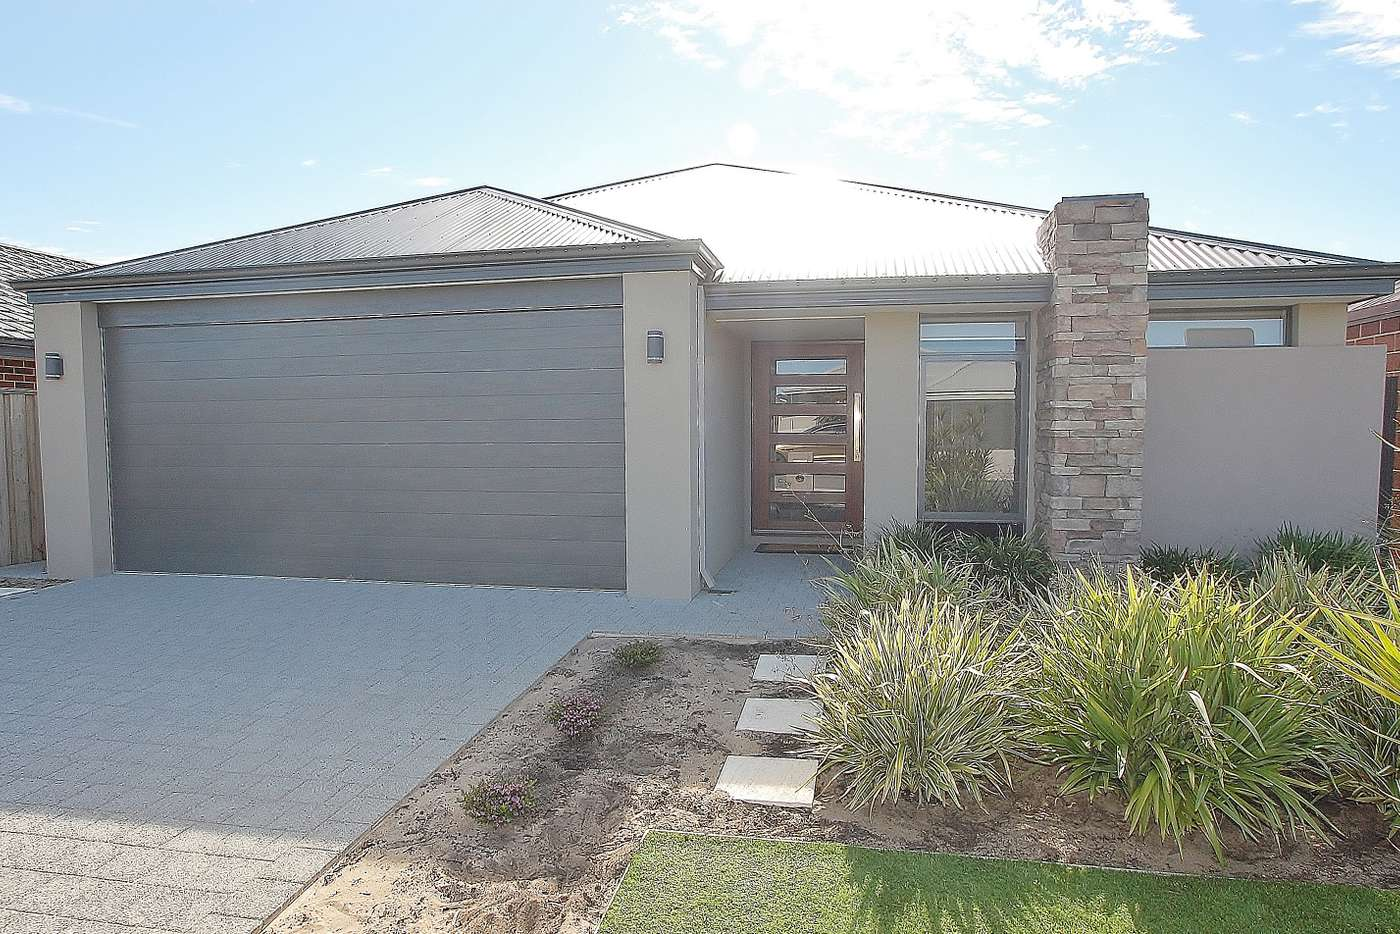 Main view of Homely house listing, 10 Slade Avenue, Ellenbrook WA 6069